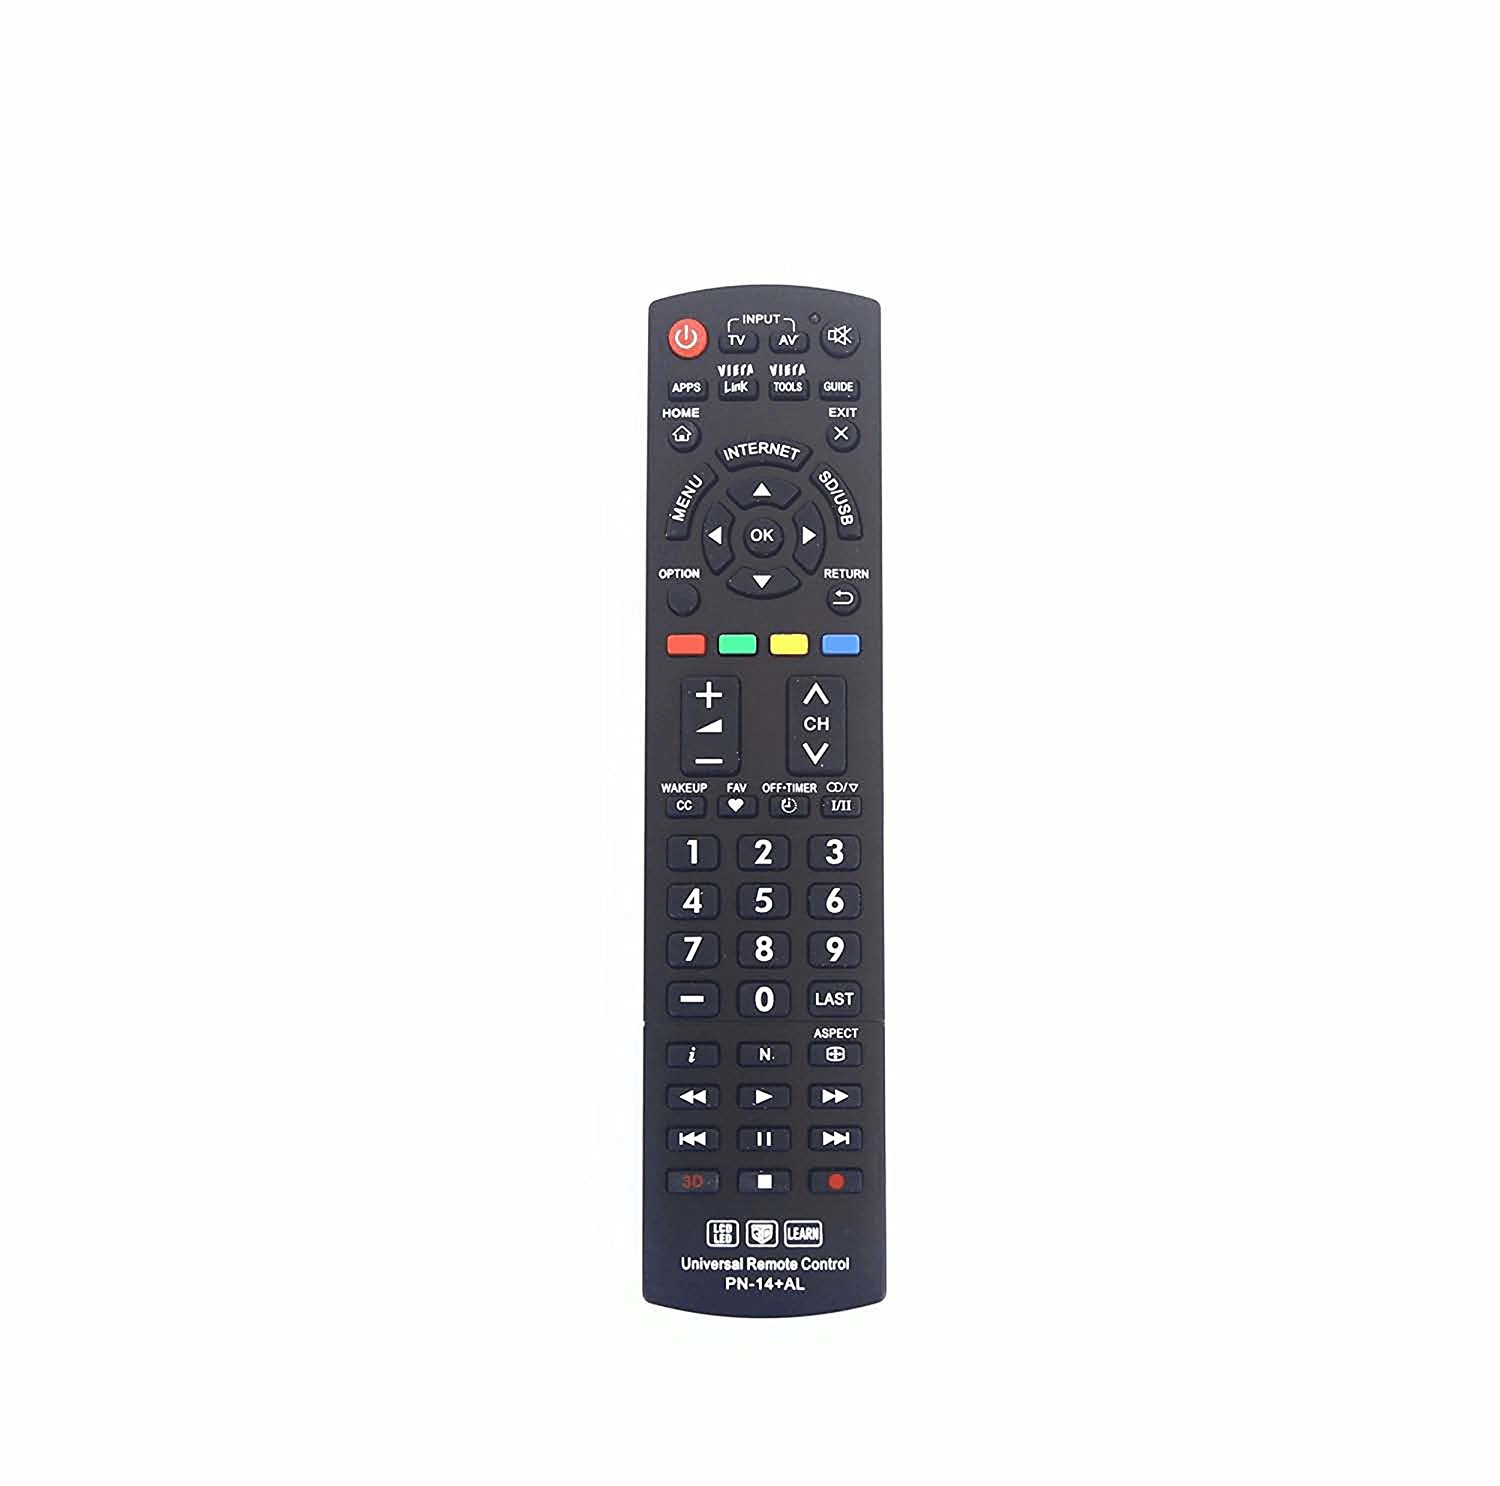 Vinabty New Replaced Remote fit for Panasonic N2QAYB000485 N2QAYB000486 N2QAYB000321 N2QAYB000221 N2QAYB000703 N2QAYB000837 N2QAYB000926 Plasma Smart 3D LED LCD HDTV TV Remote (PN-14)